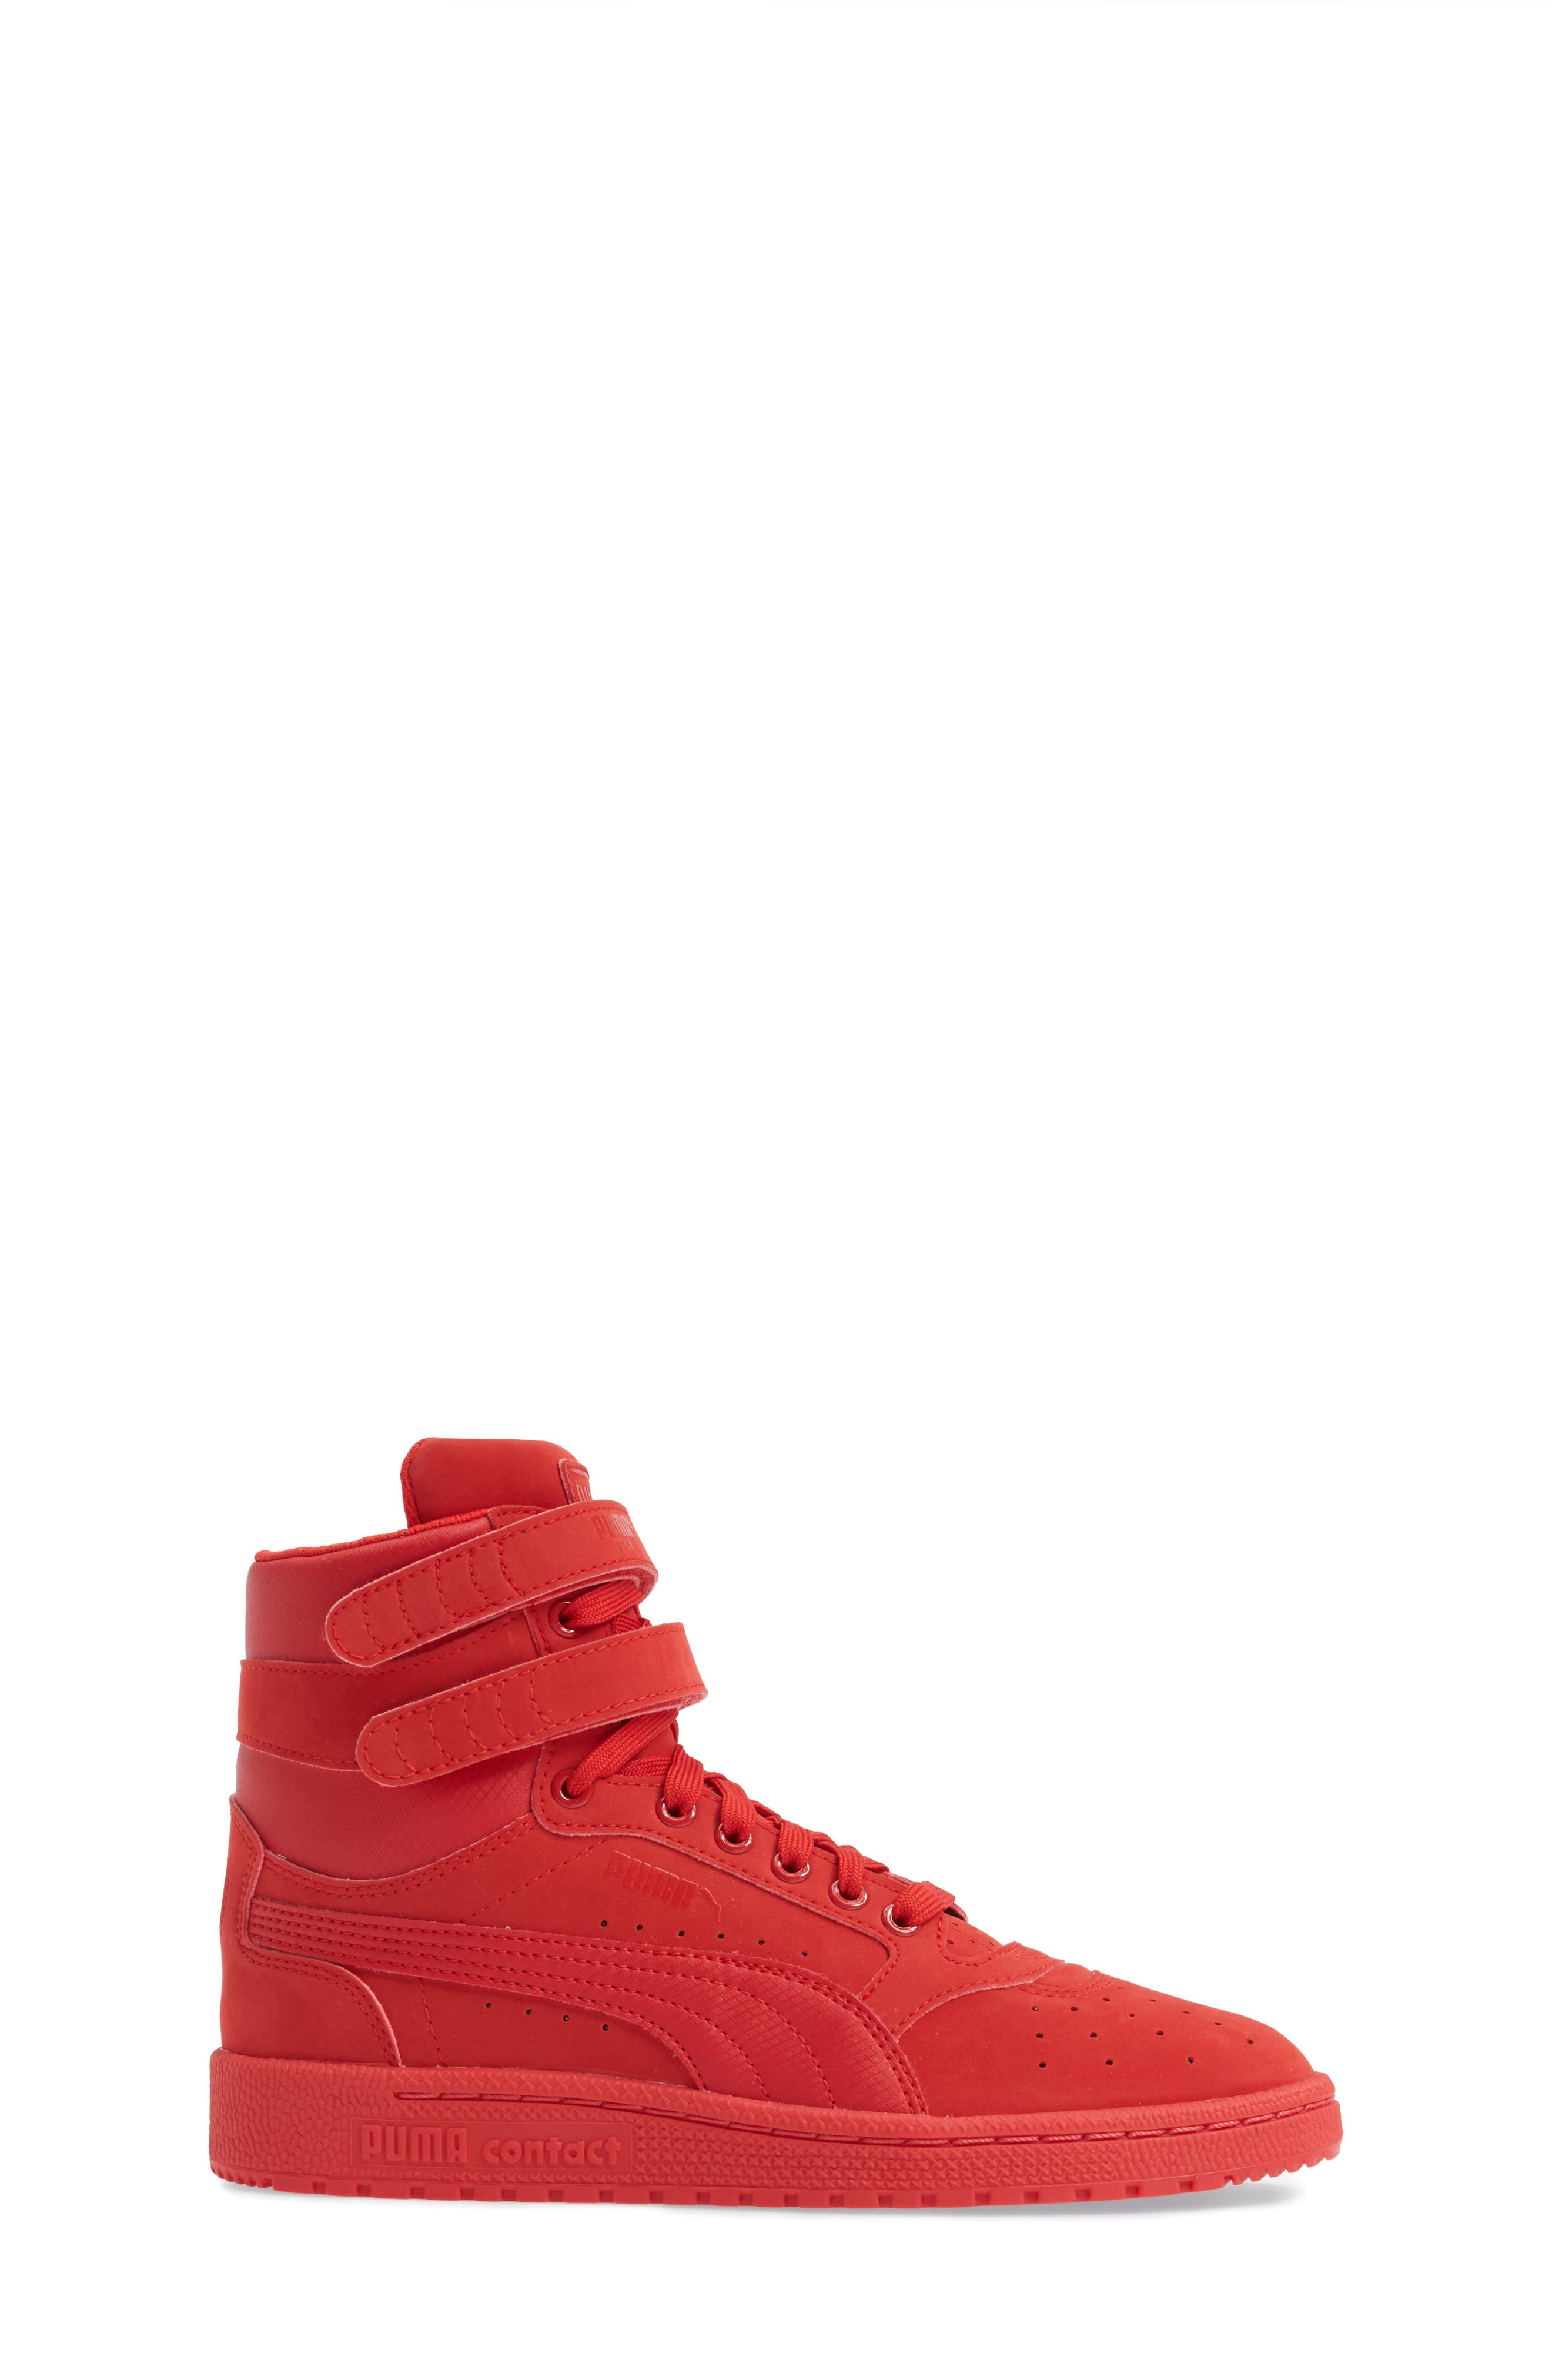 Ski II High Top Sneaker,                             Alternate thumbnail 6, color,